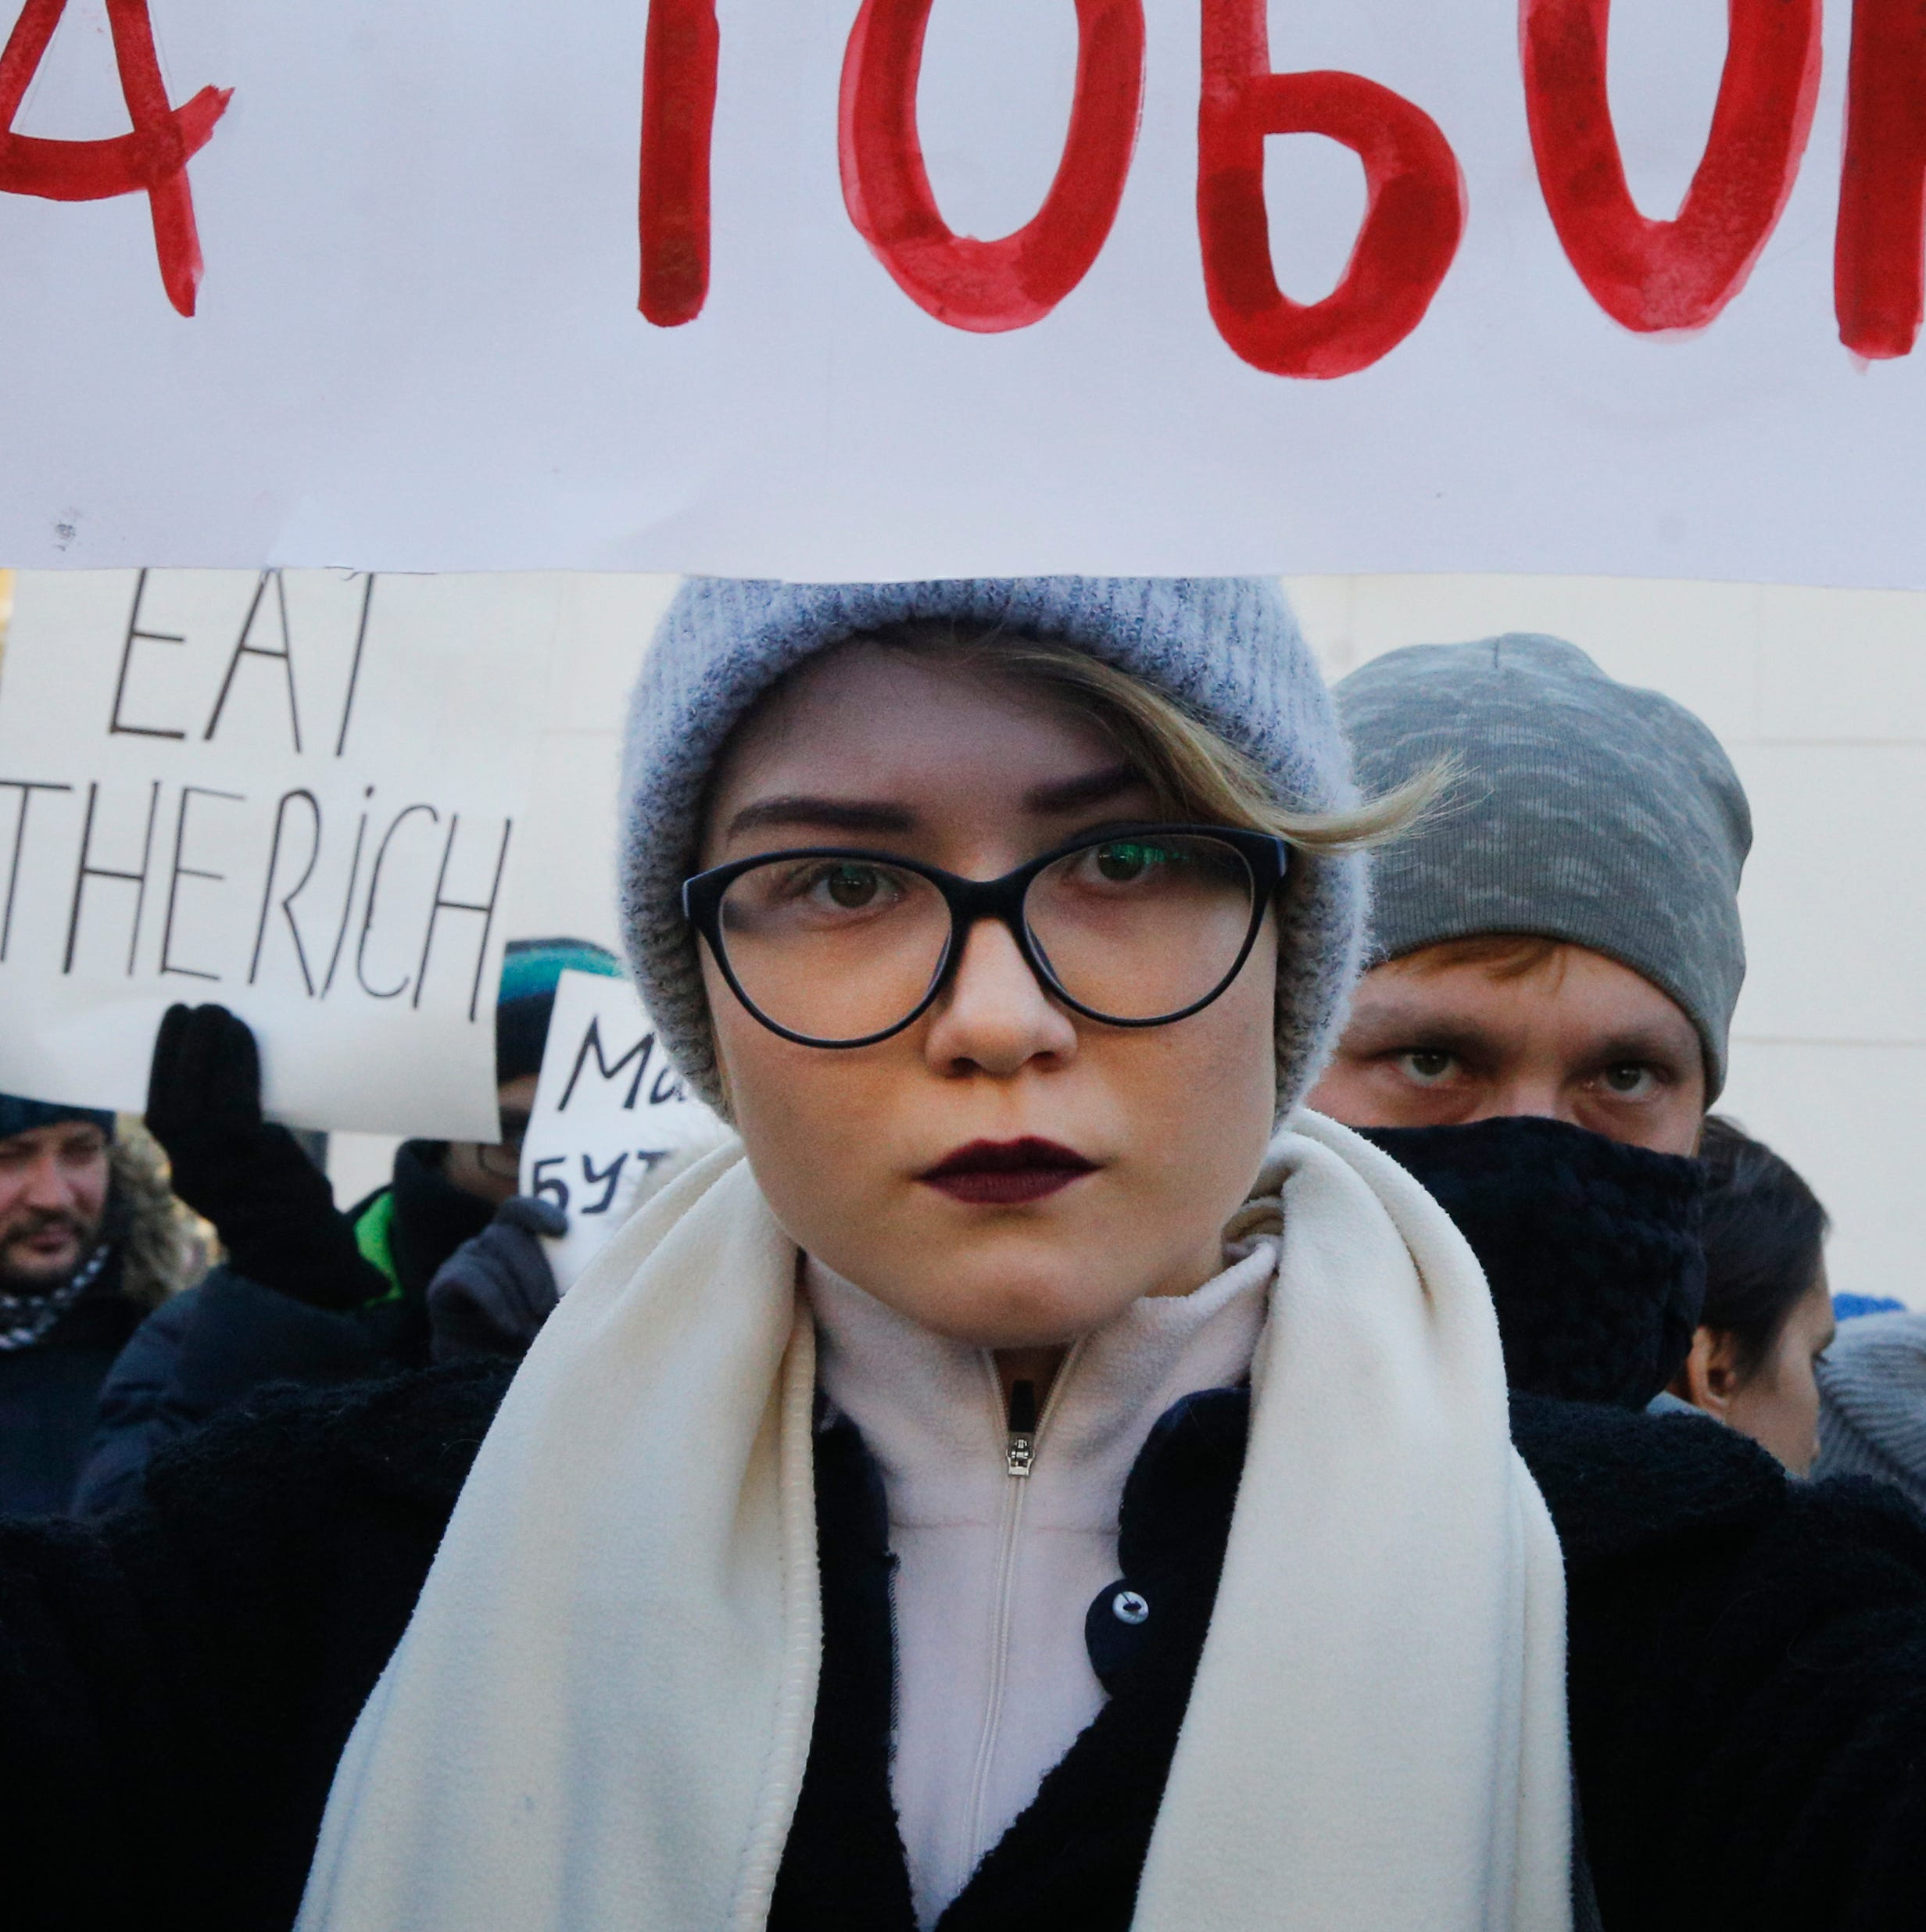 "A young woman attends a gay and lesbian rally a few days before the International Transgender Day of Remembrance in Kiev, Ukraine, Sunday, Nov. 18, 2018. Writing on the poster reads: ""If you stay silent, they will come for you, too."" The day is observed annually in Ukraine to memorialize those who have been murdered as a result of transphobia. Amnesty International in Ukraine has warned on the growing violence against sexual minorities from radical groups."